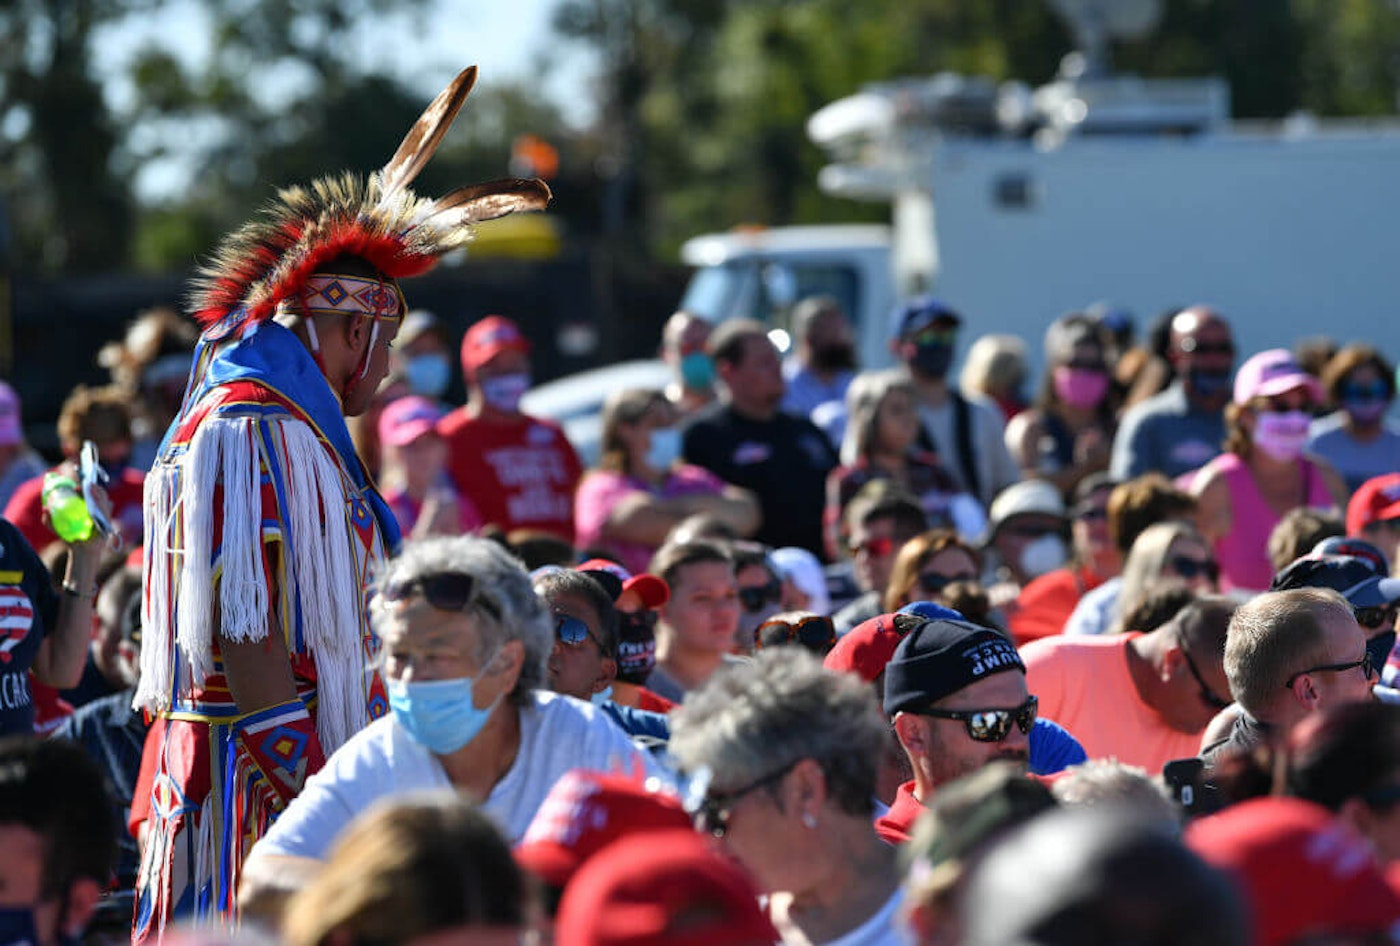 LUMBERTON, USA - OCTOBER 24: People attend President Trump's event on Saturday in NC. In the closing days fo the 2020 election, both Trump and former Vice President Joe Biden have been courting key votes from Lumbee residents of rural Robeson County. (Photo by Peter Zay/Anadolu Agency via Getty Images)